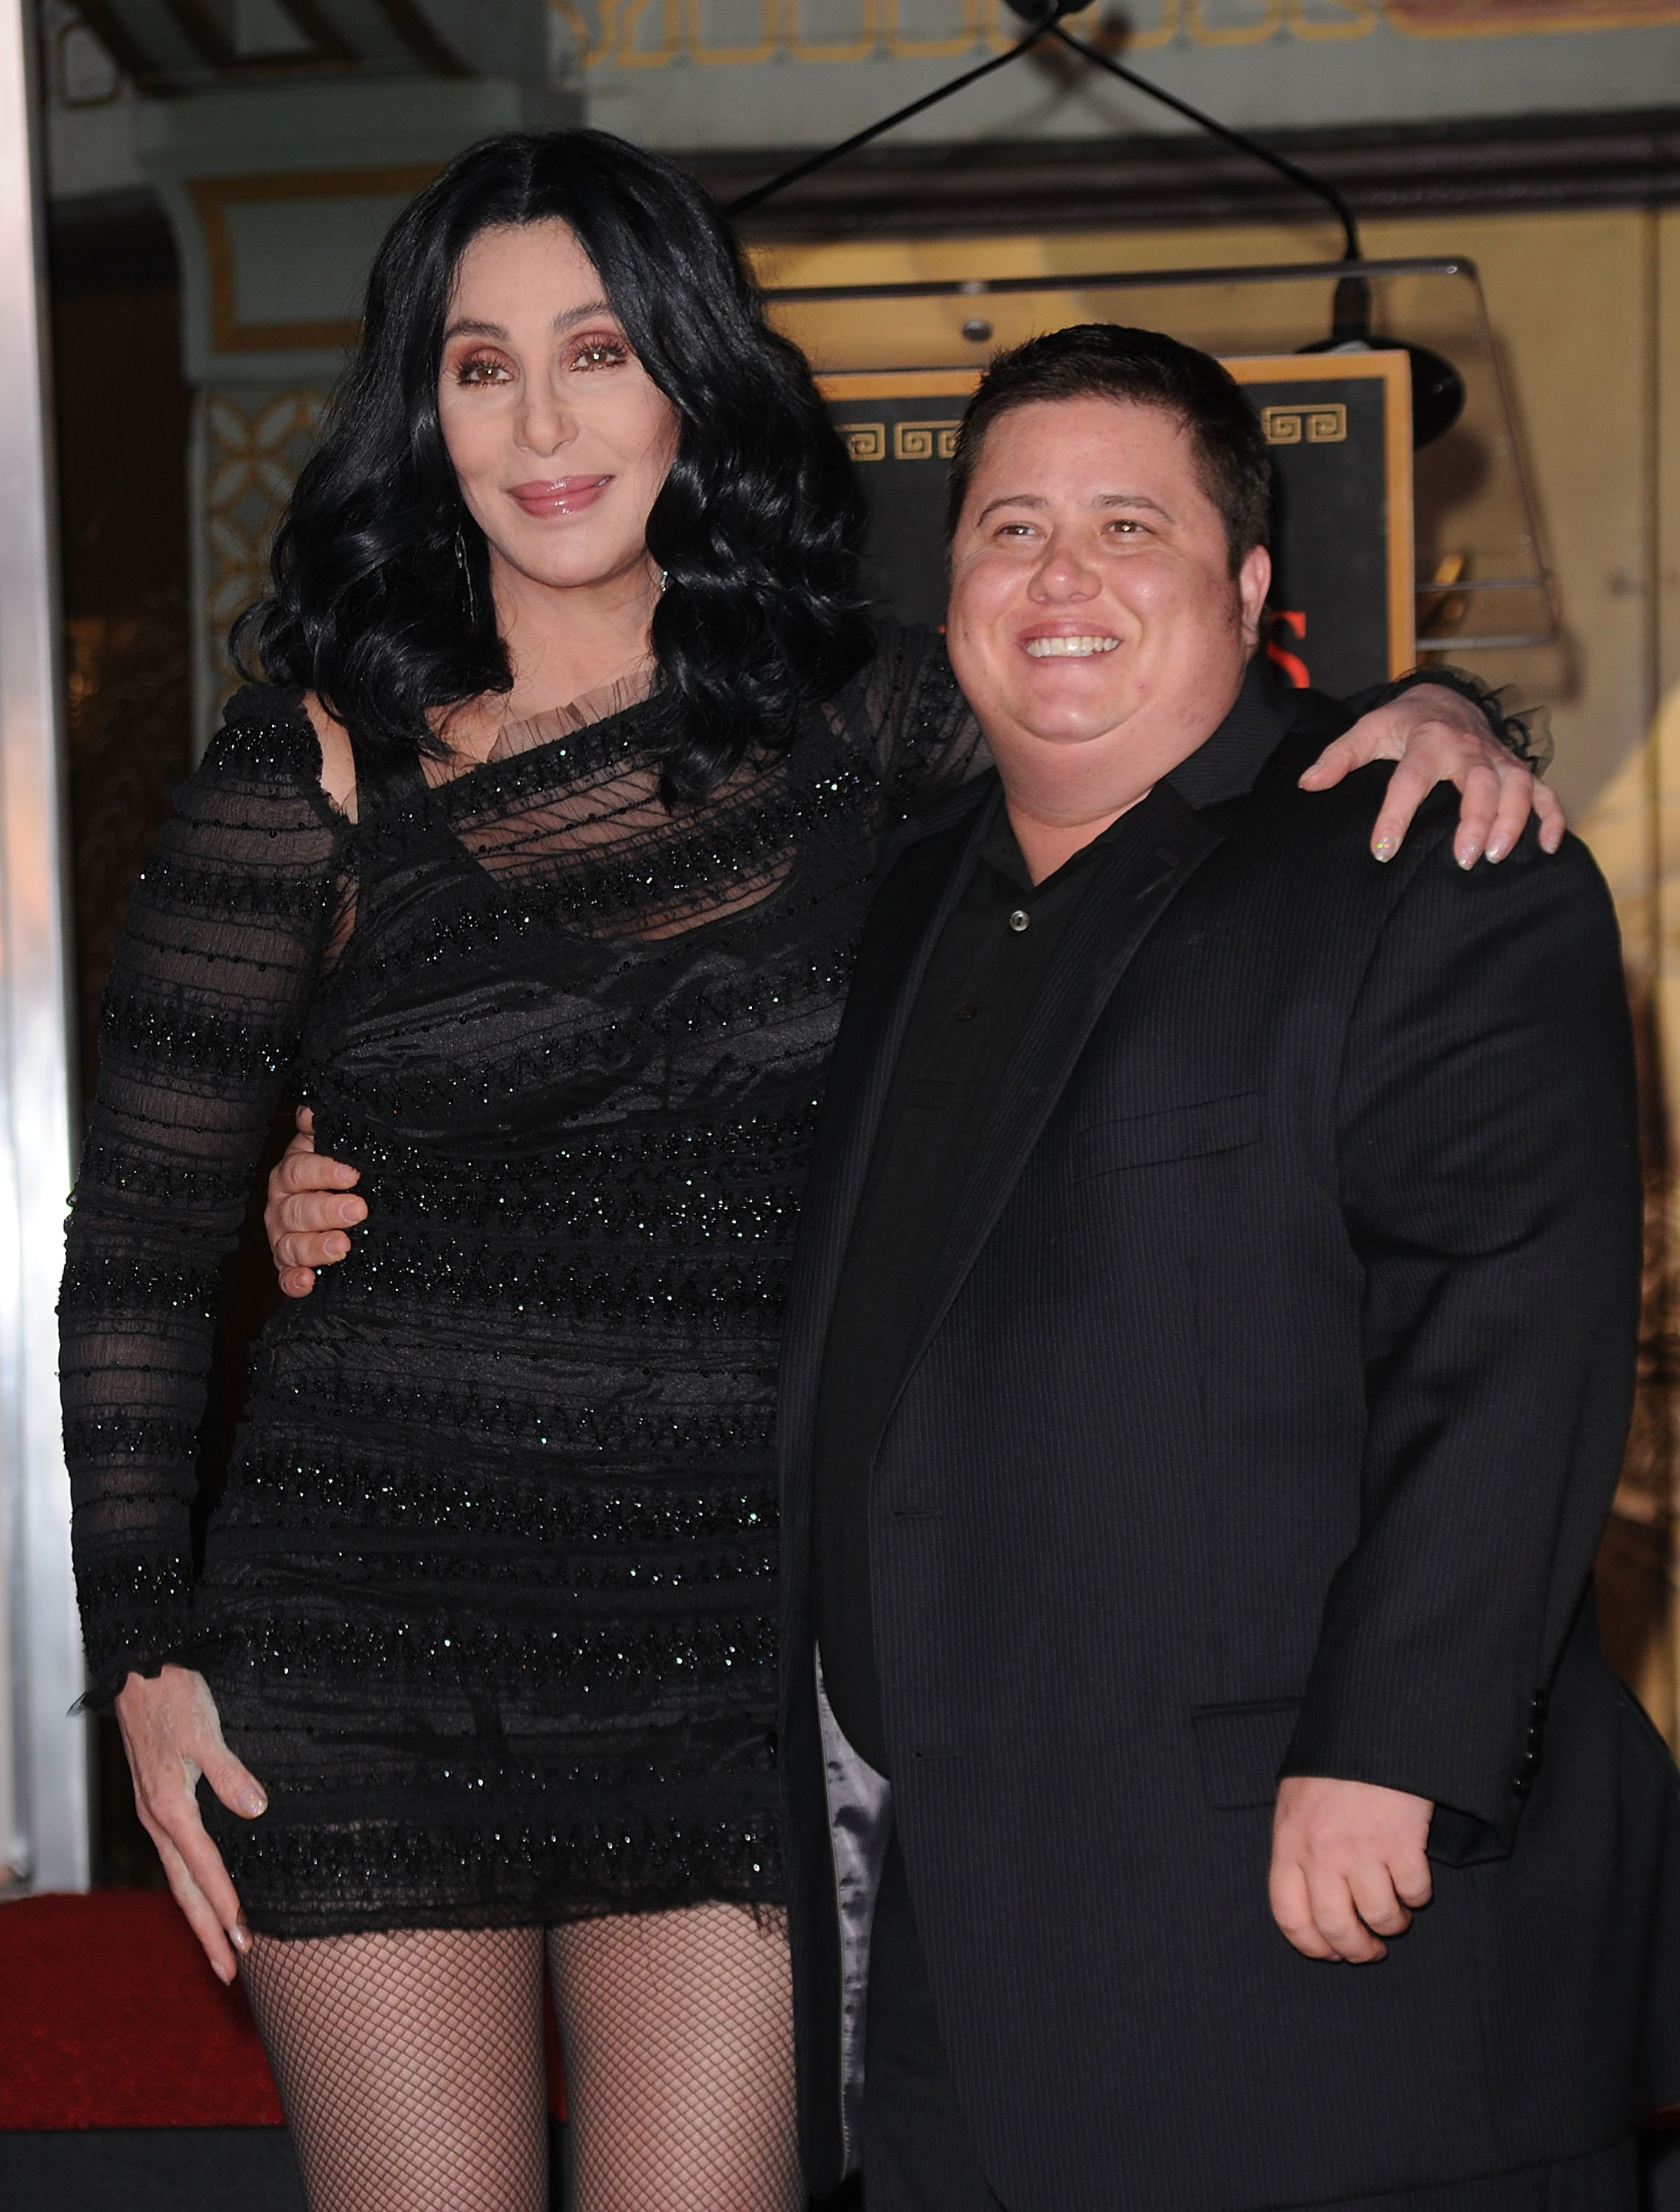 Image Source: Getty Images/Cher and her son Chaz